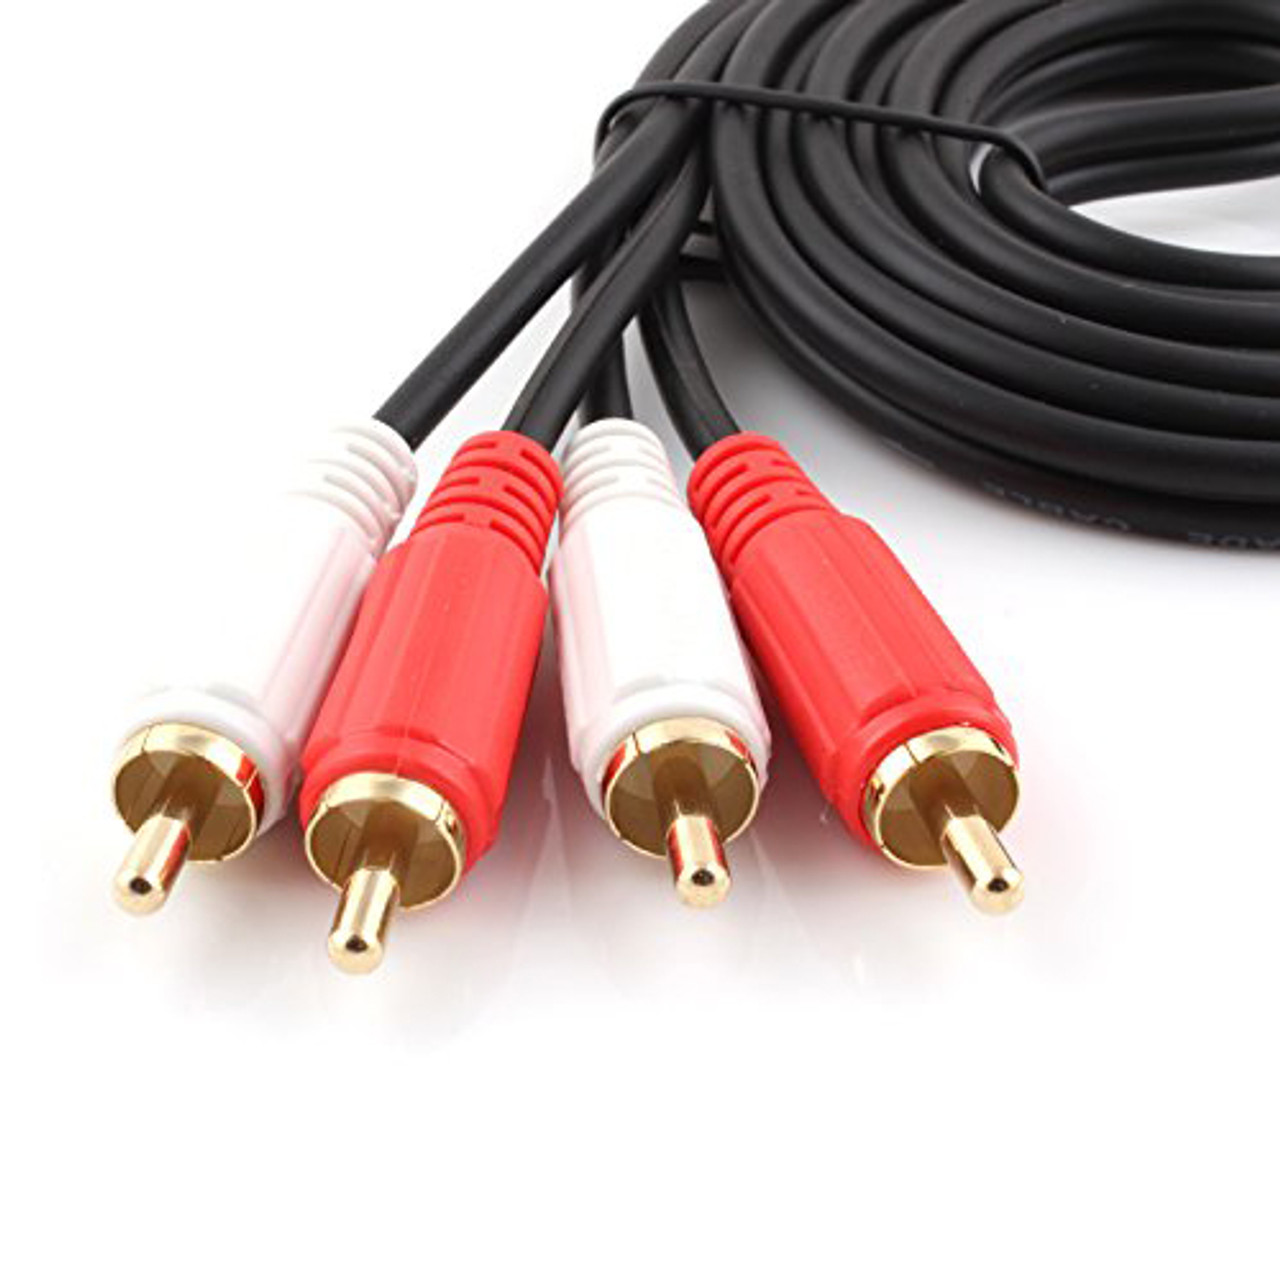 1M 2RCA to 2RCA Audio Cable OFC